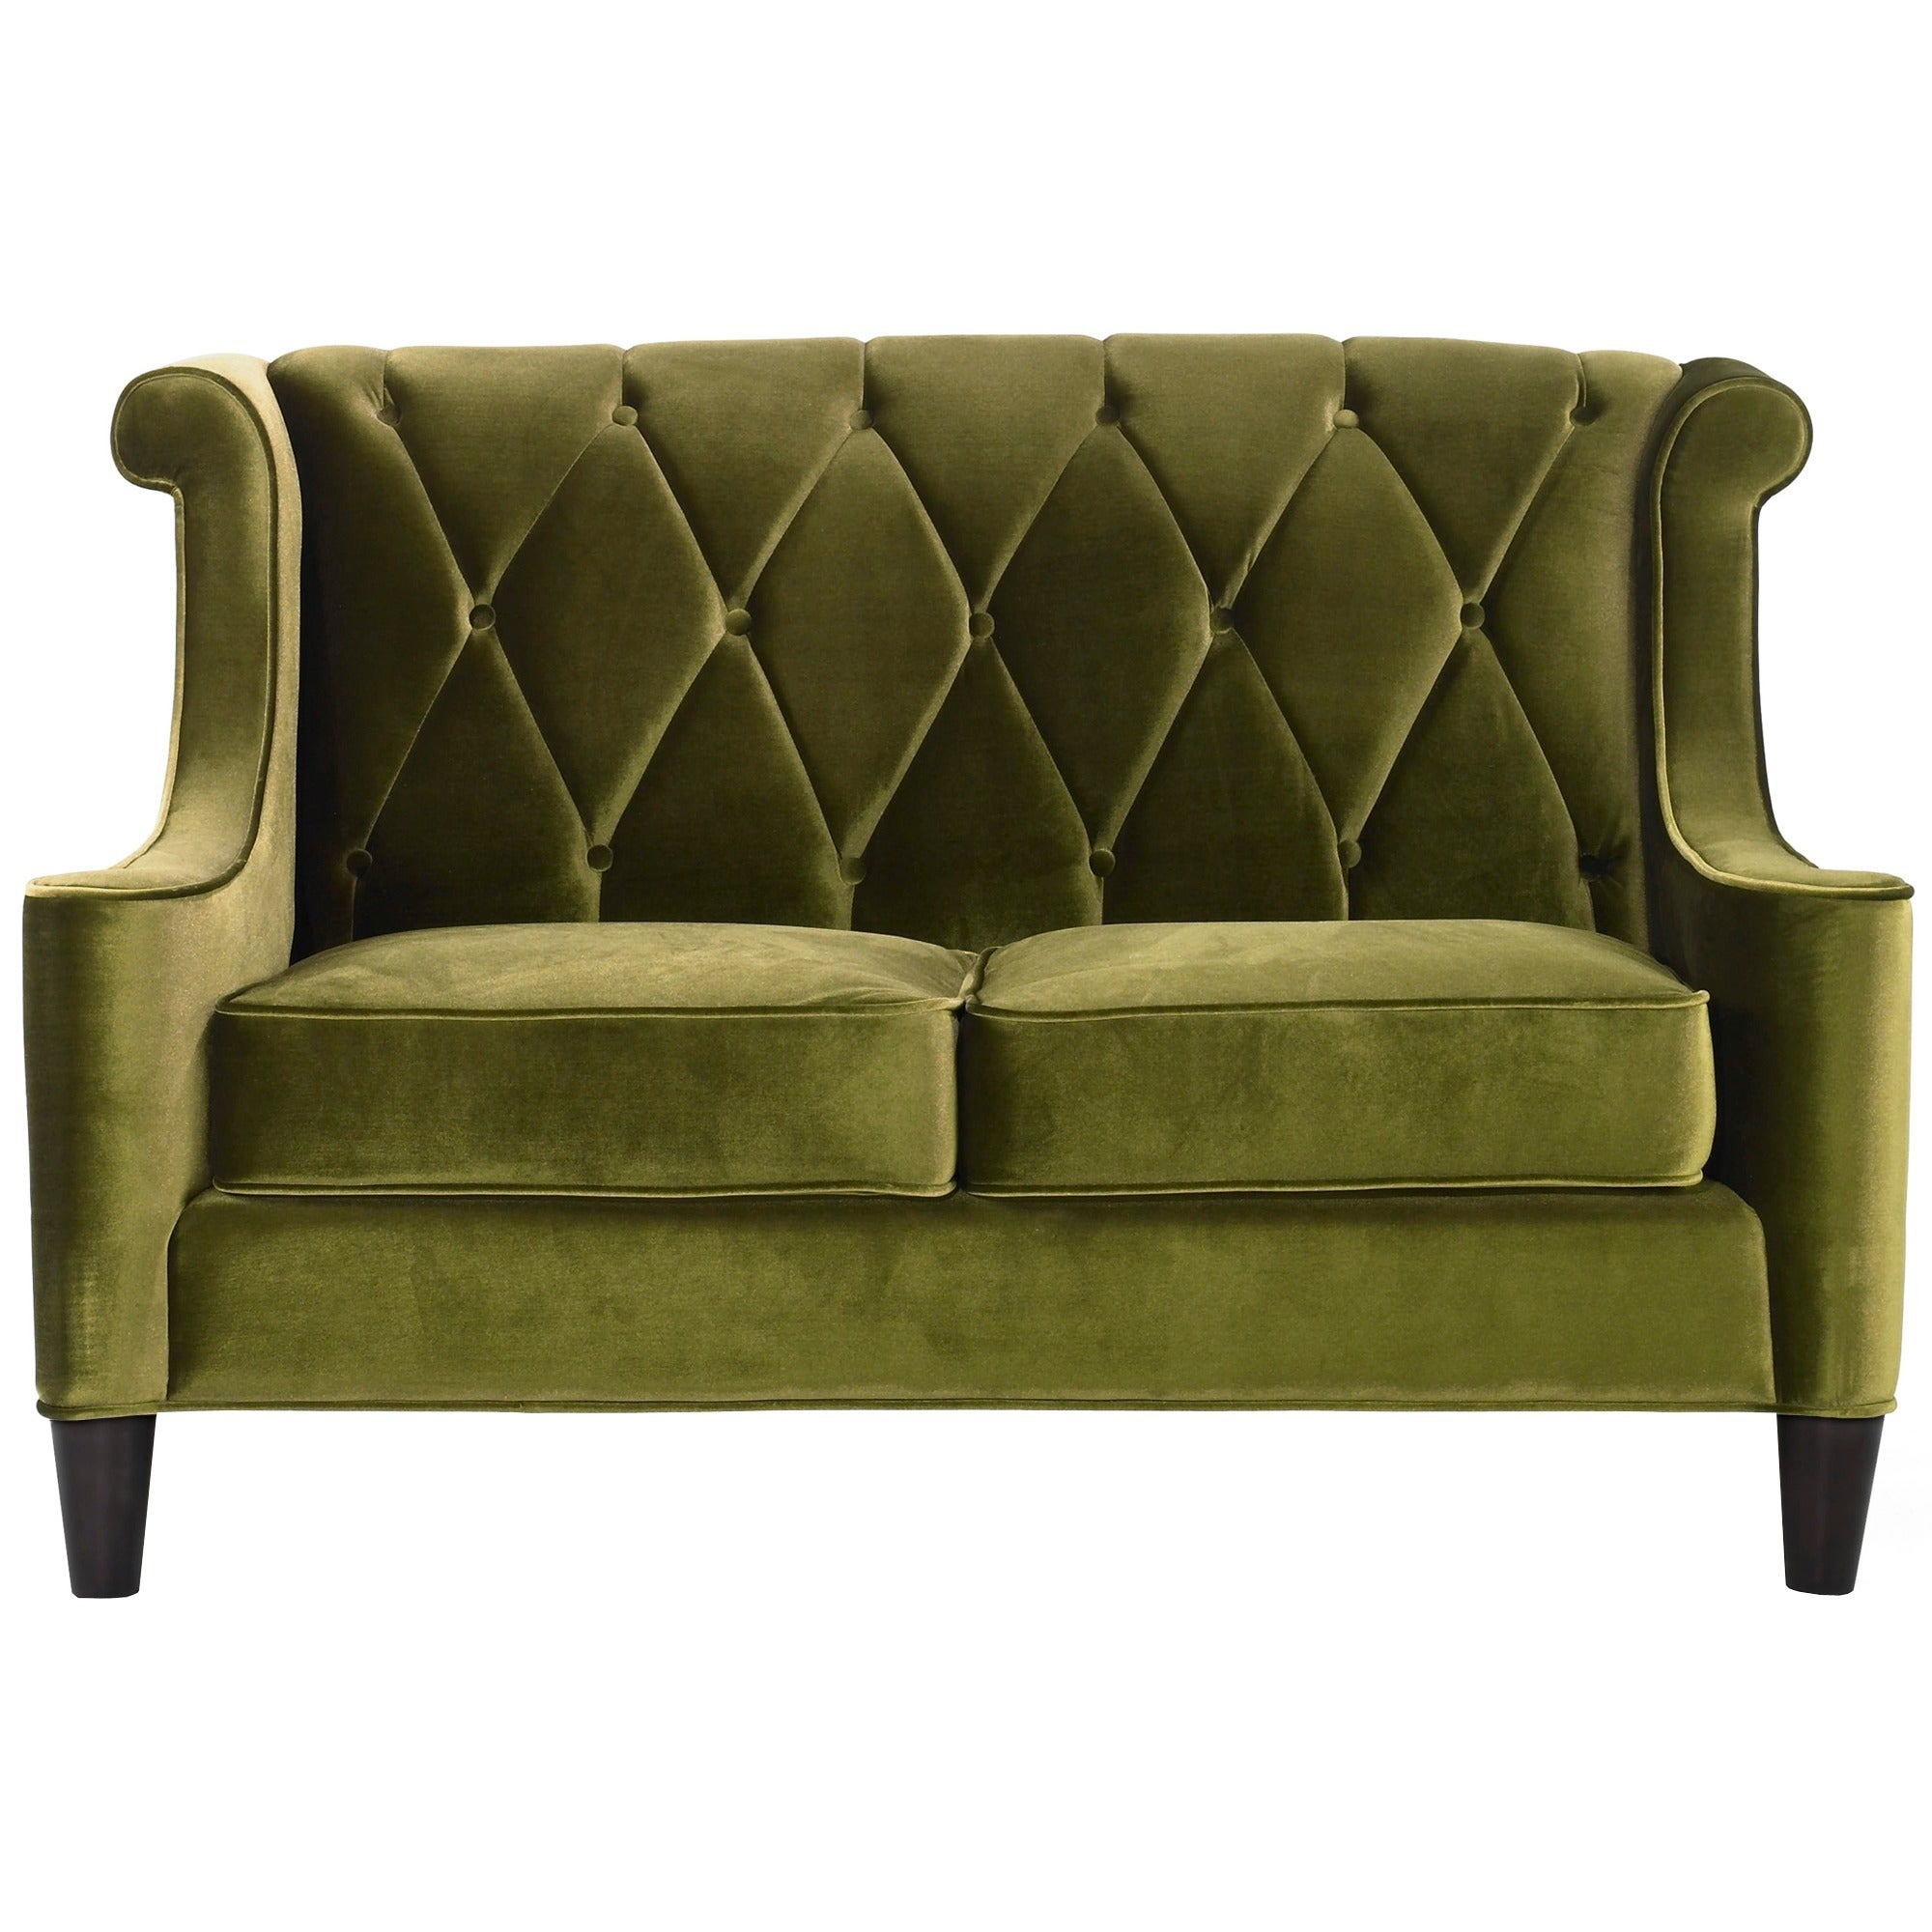 collection bowery part pixelablog sofa of images escofet urban the and loveseat velvet d green furniture outlet u models